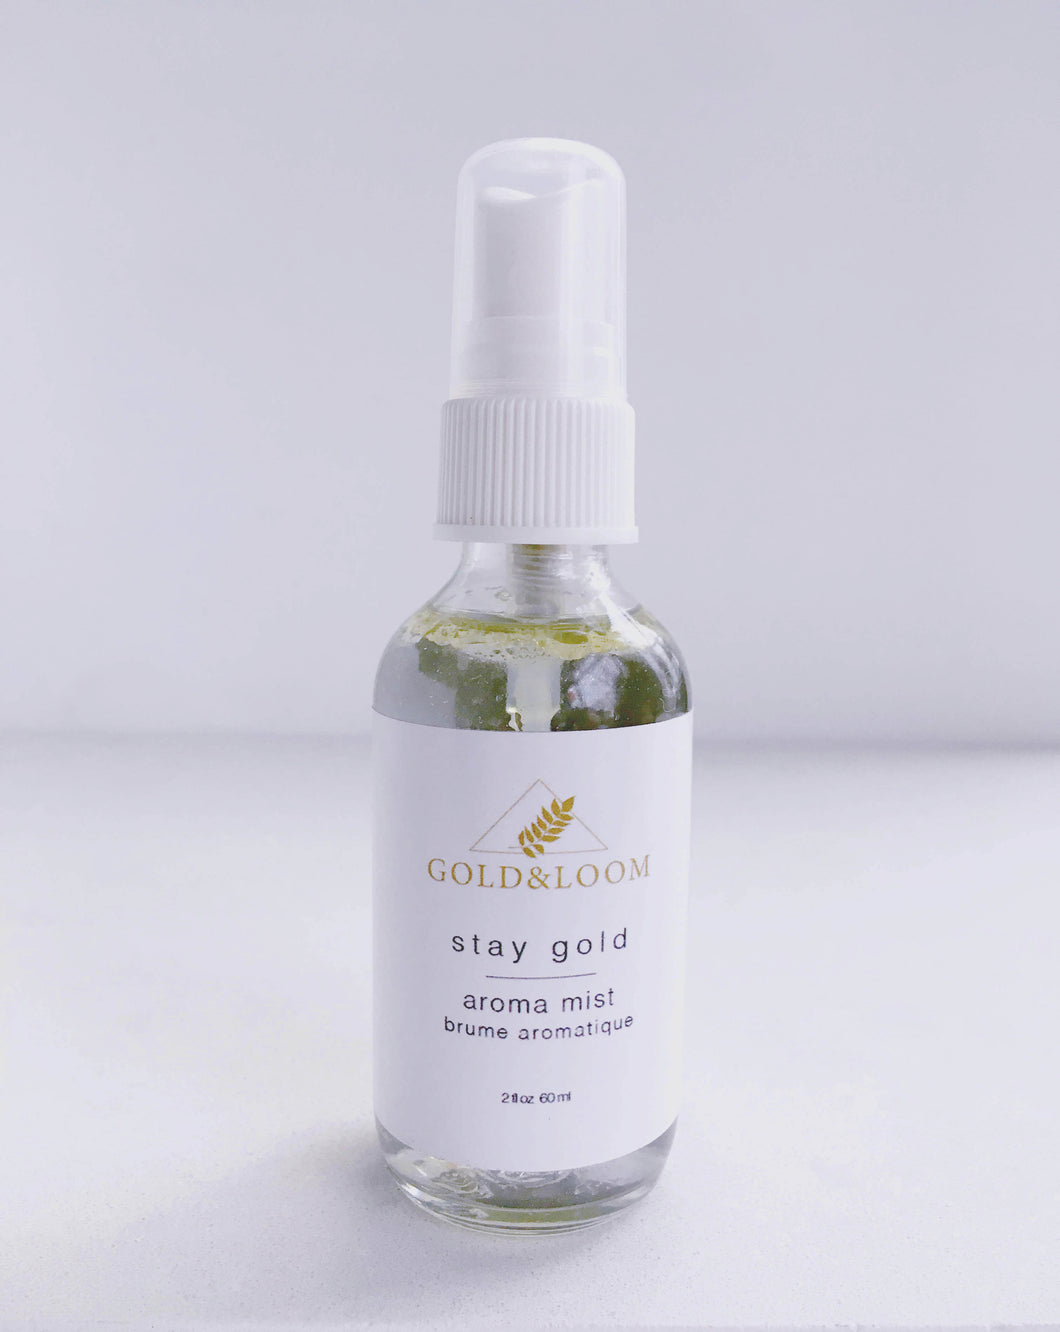 Aroma Mist - Stay Gold by Gold & Loom